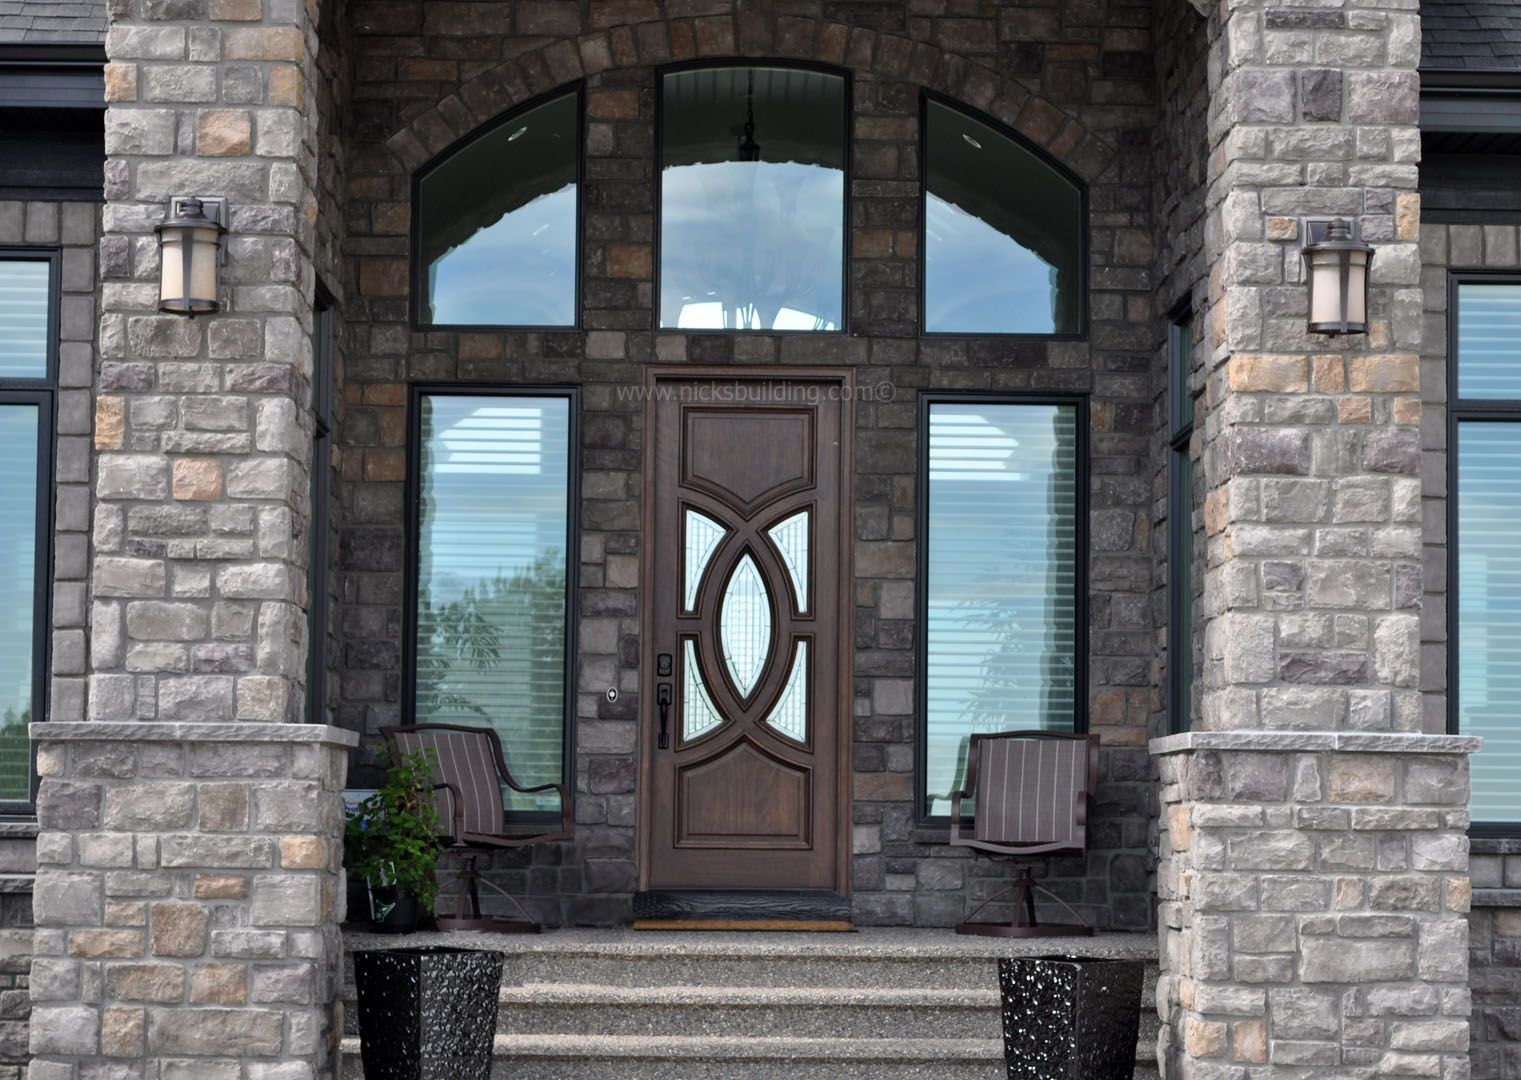 Luxury Home Entrance Luxury Home Entrance Brick Home Entrance Brown Wood Door